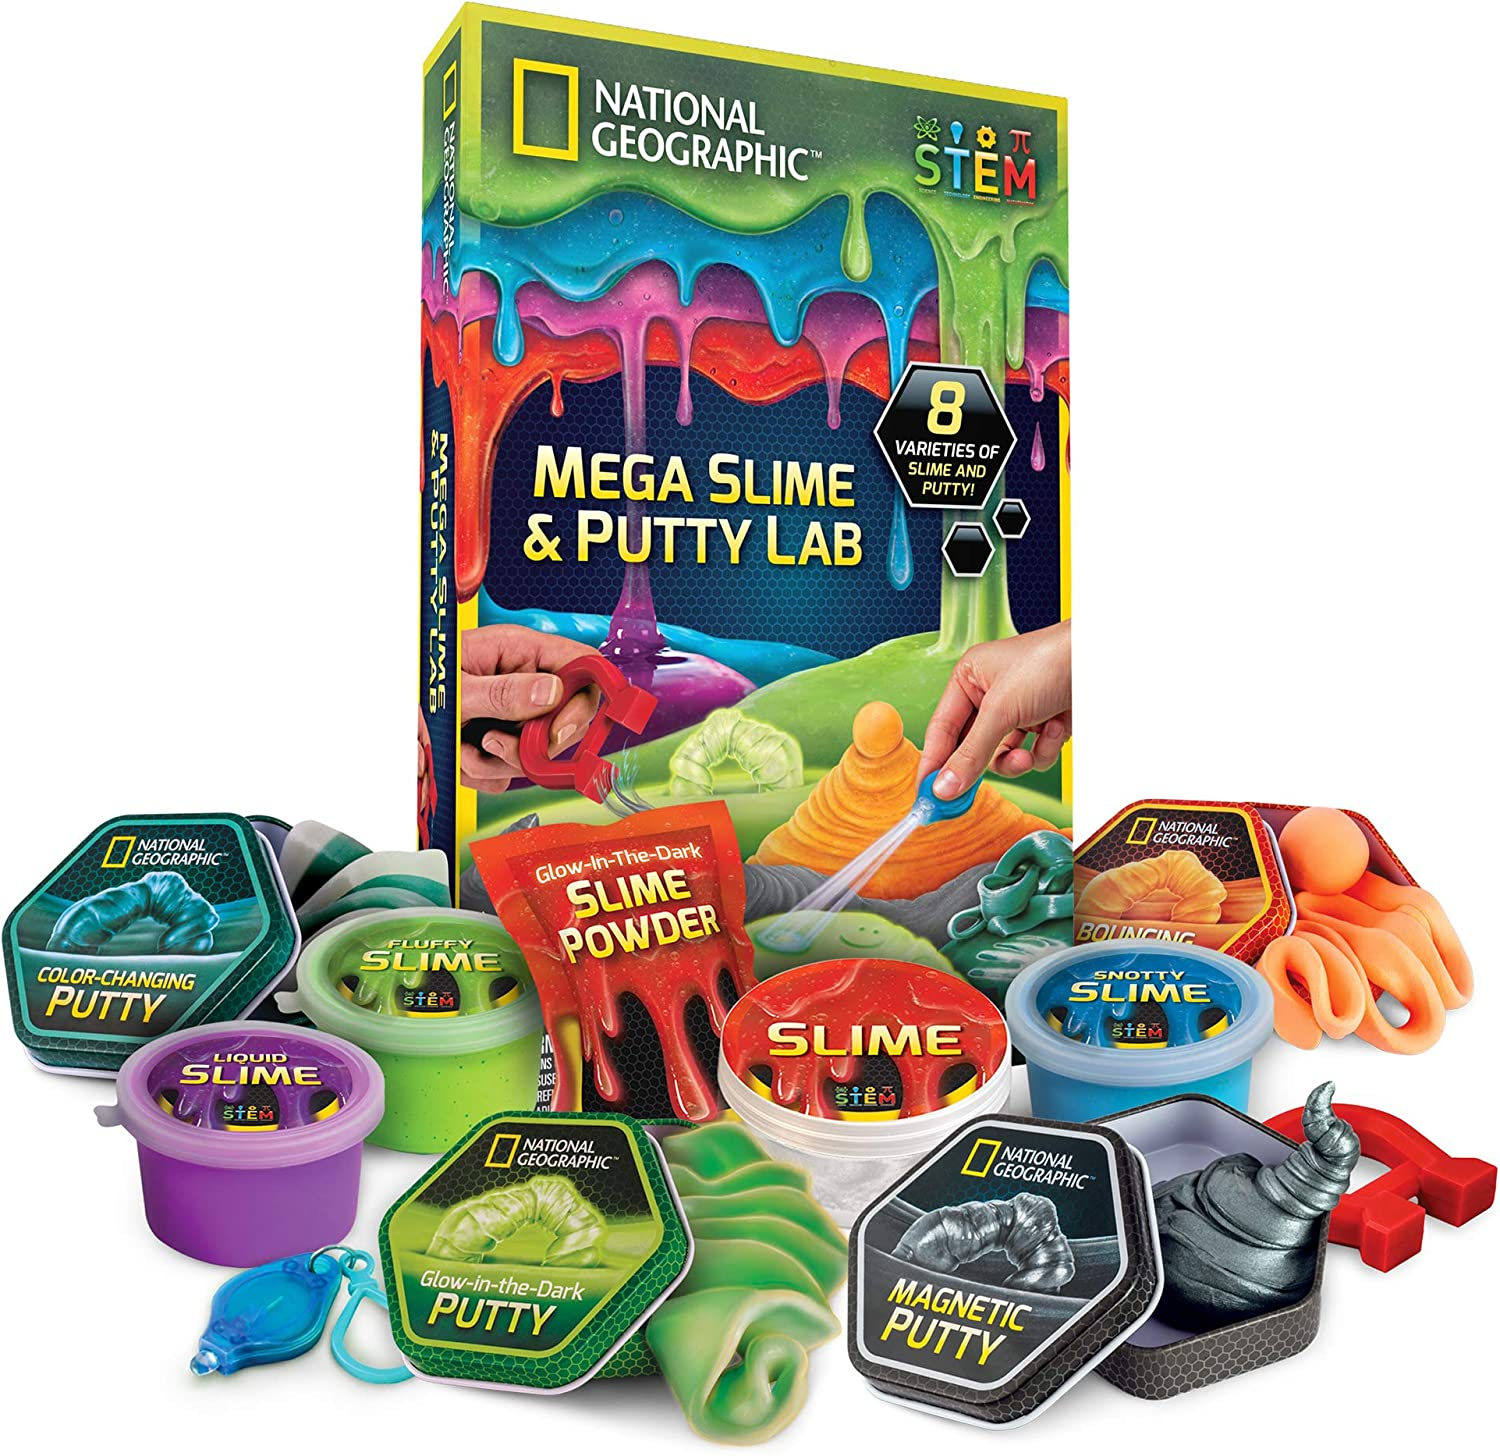 NATIONAL GEOGRAPHIC Mega Slime Kit & Putty Lab - 4 Types of Amazing Slime For Girls & Boys Plus 4 Types of Putty Including Magnetic Putty, Fluffy Slime & Glow-in-the-Dark Putty: Toys & Games